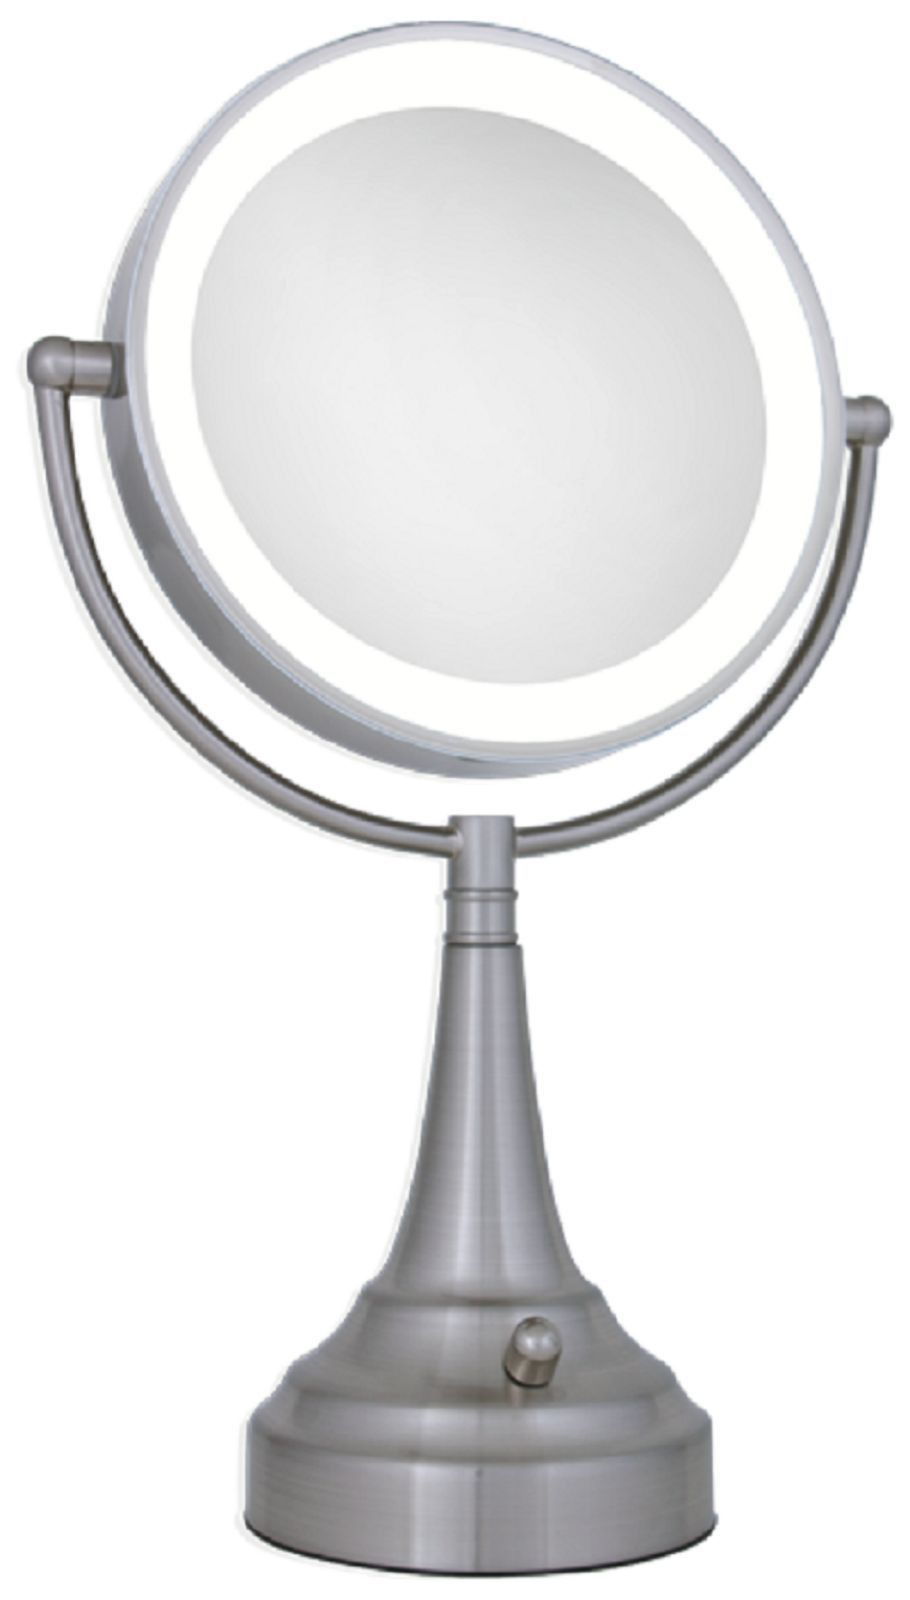 Zadro 1x 10x cordless corded led lighted vanity makeup mirror zadro 1x 10x cordless corded led lighted vanity makeup mirror ledsv410 new aloadofball Image collections